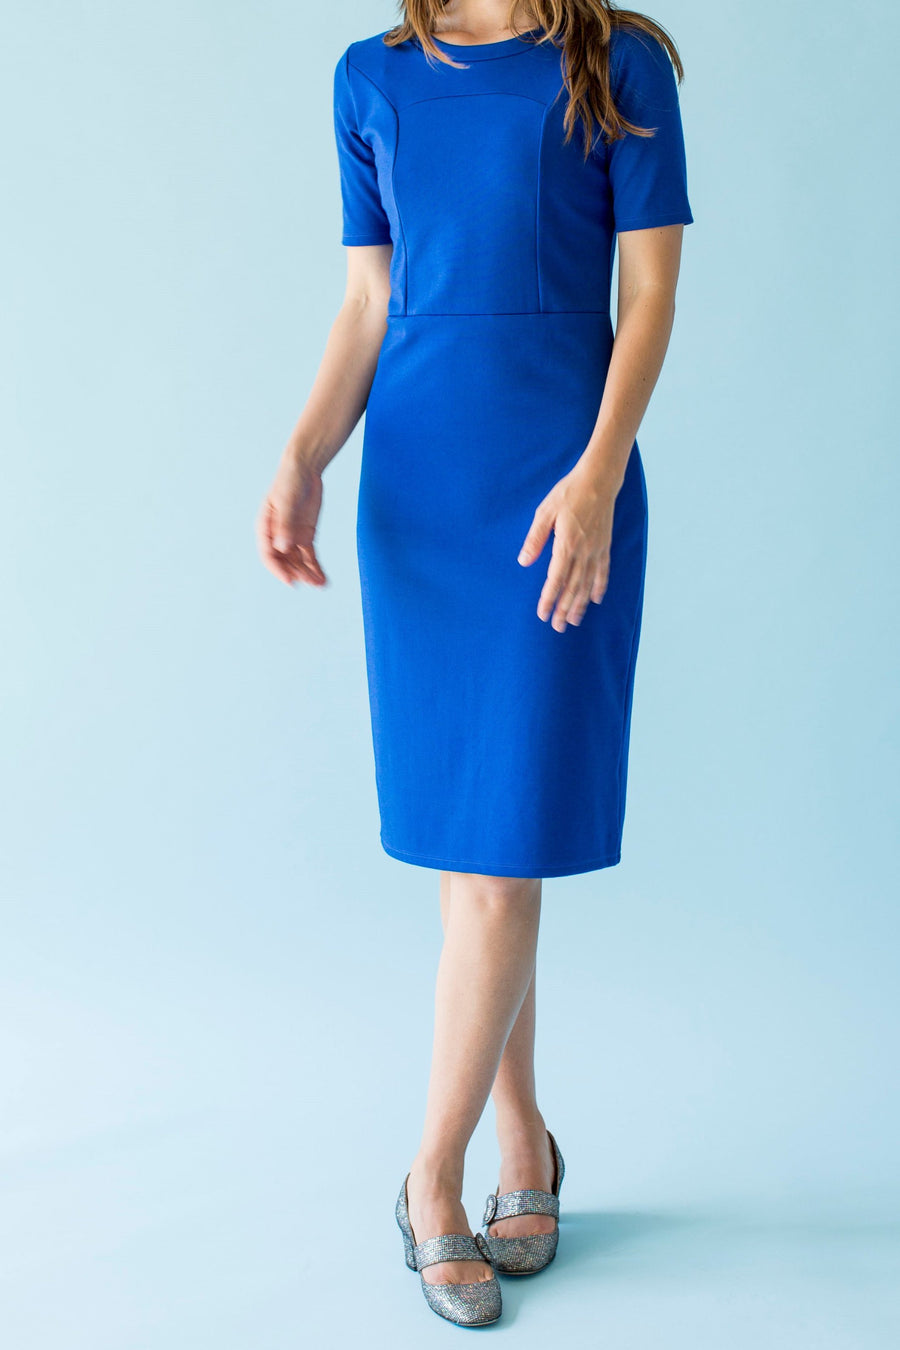 Sonnet James - PETRA - ROYAL BLUE - Dress  ,Royal Blue